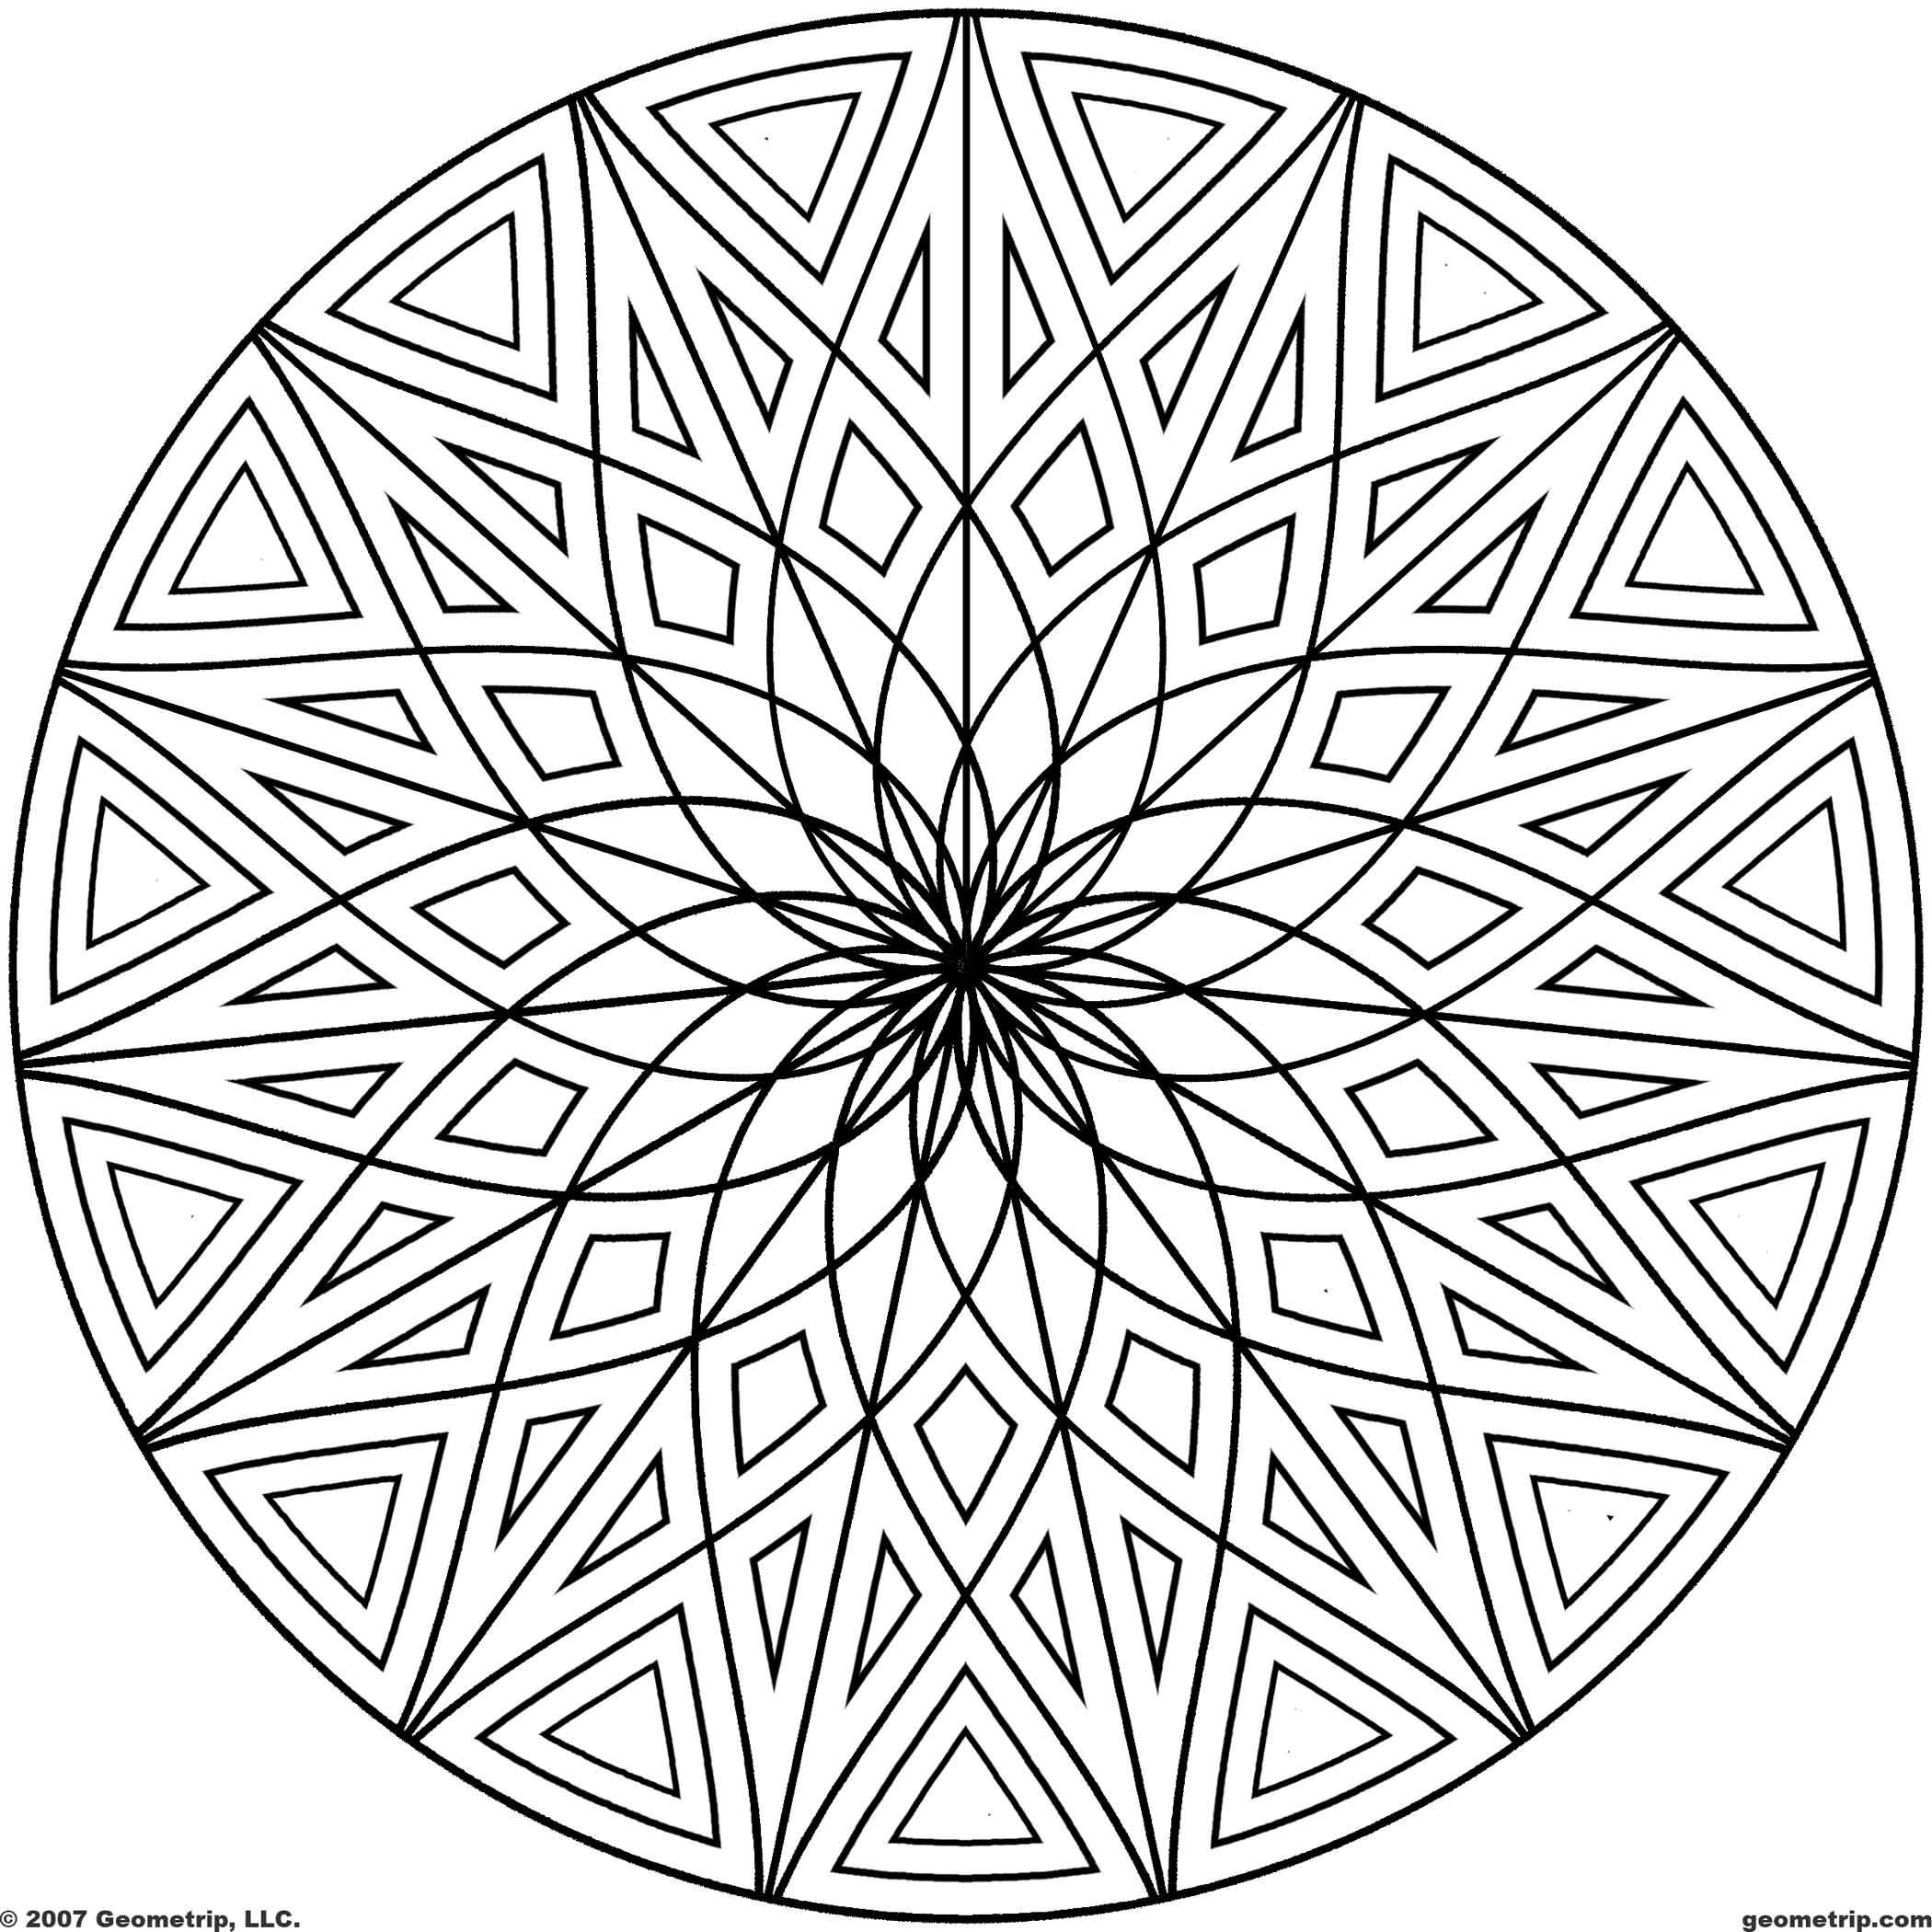 Coloring Pages of Cool Designs Download PDF JPG Sketches